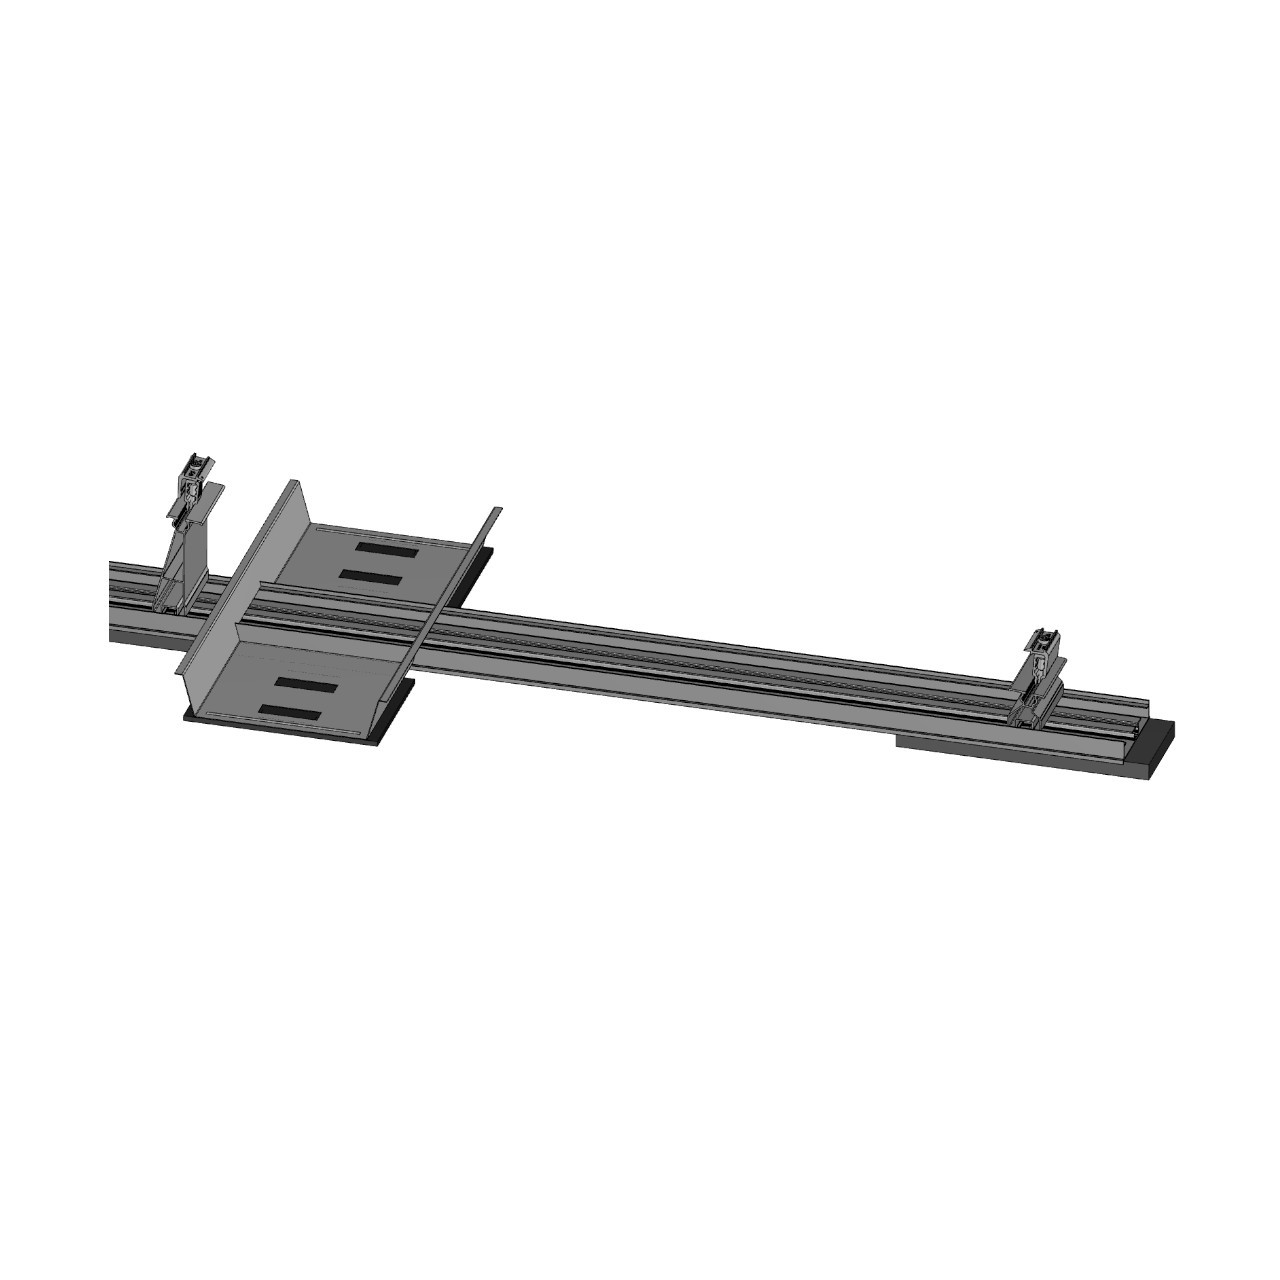 FixGrid5Plus - South - Front Rear Support Ballast